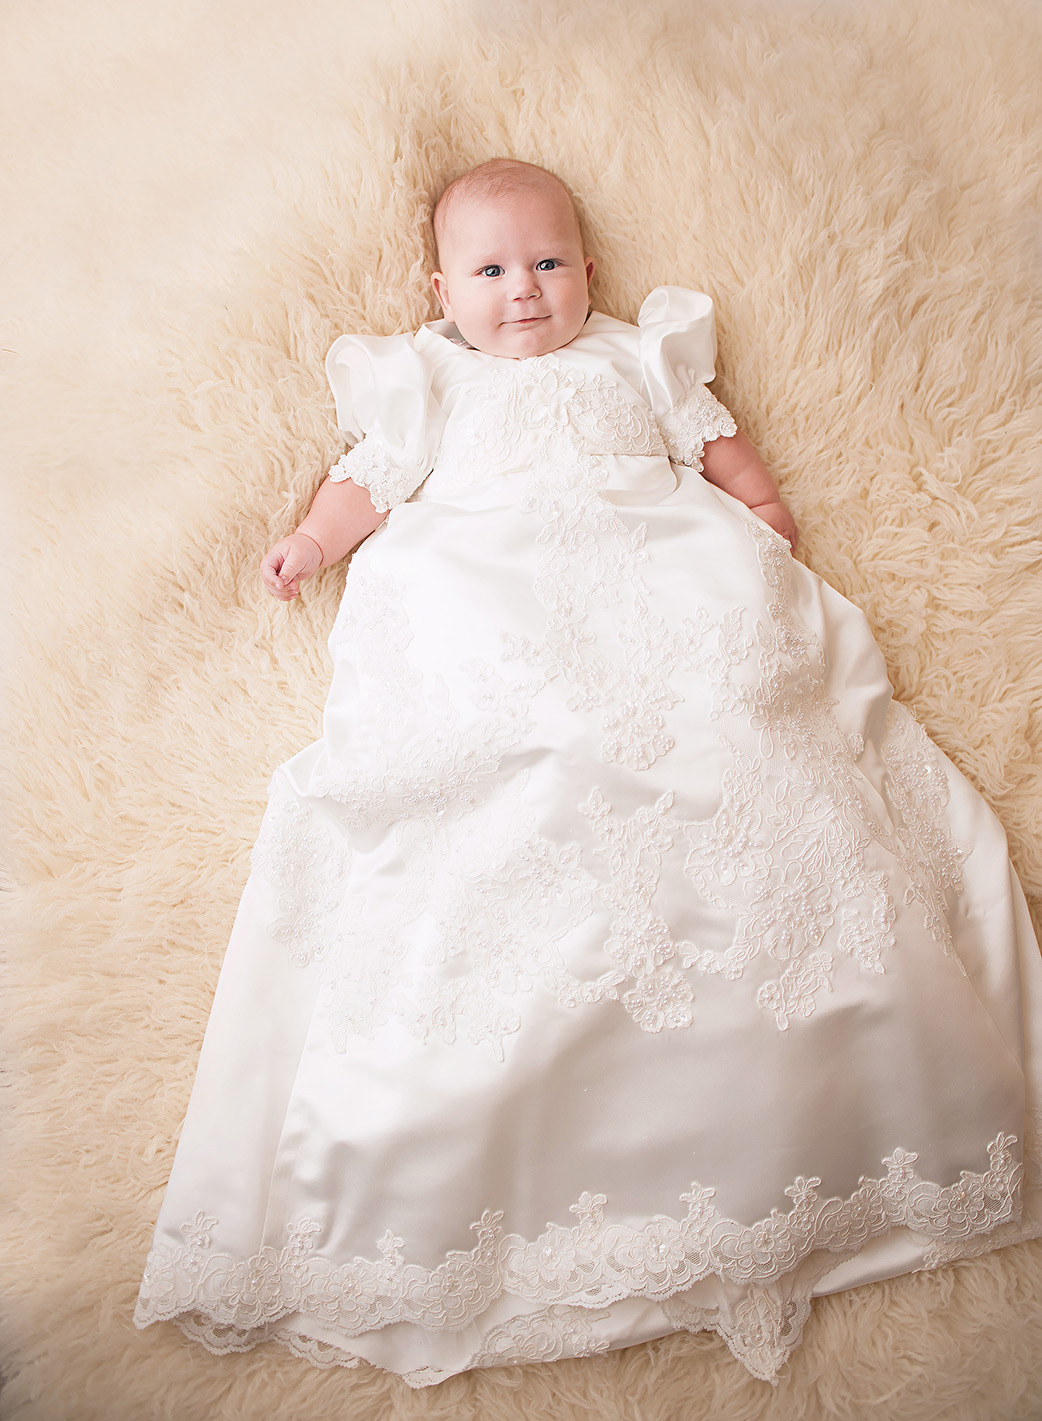 baby boy in baptism gown on white fur rug